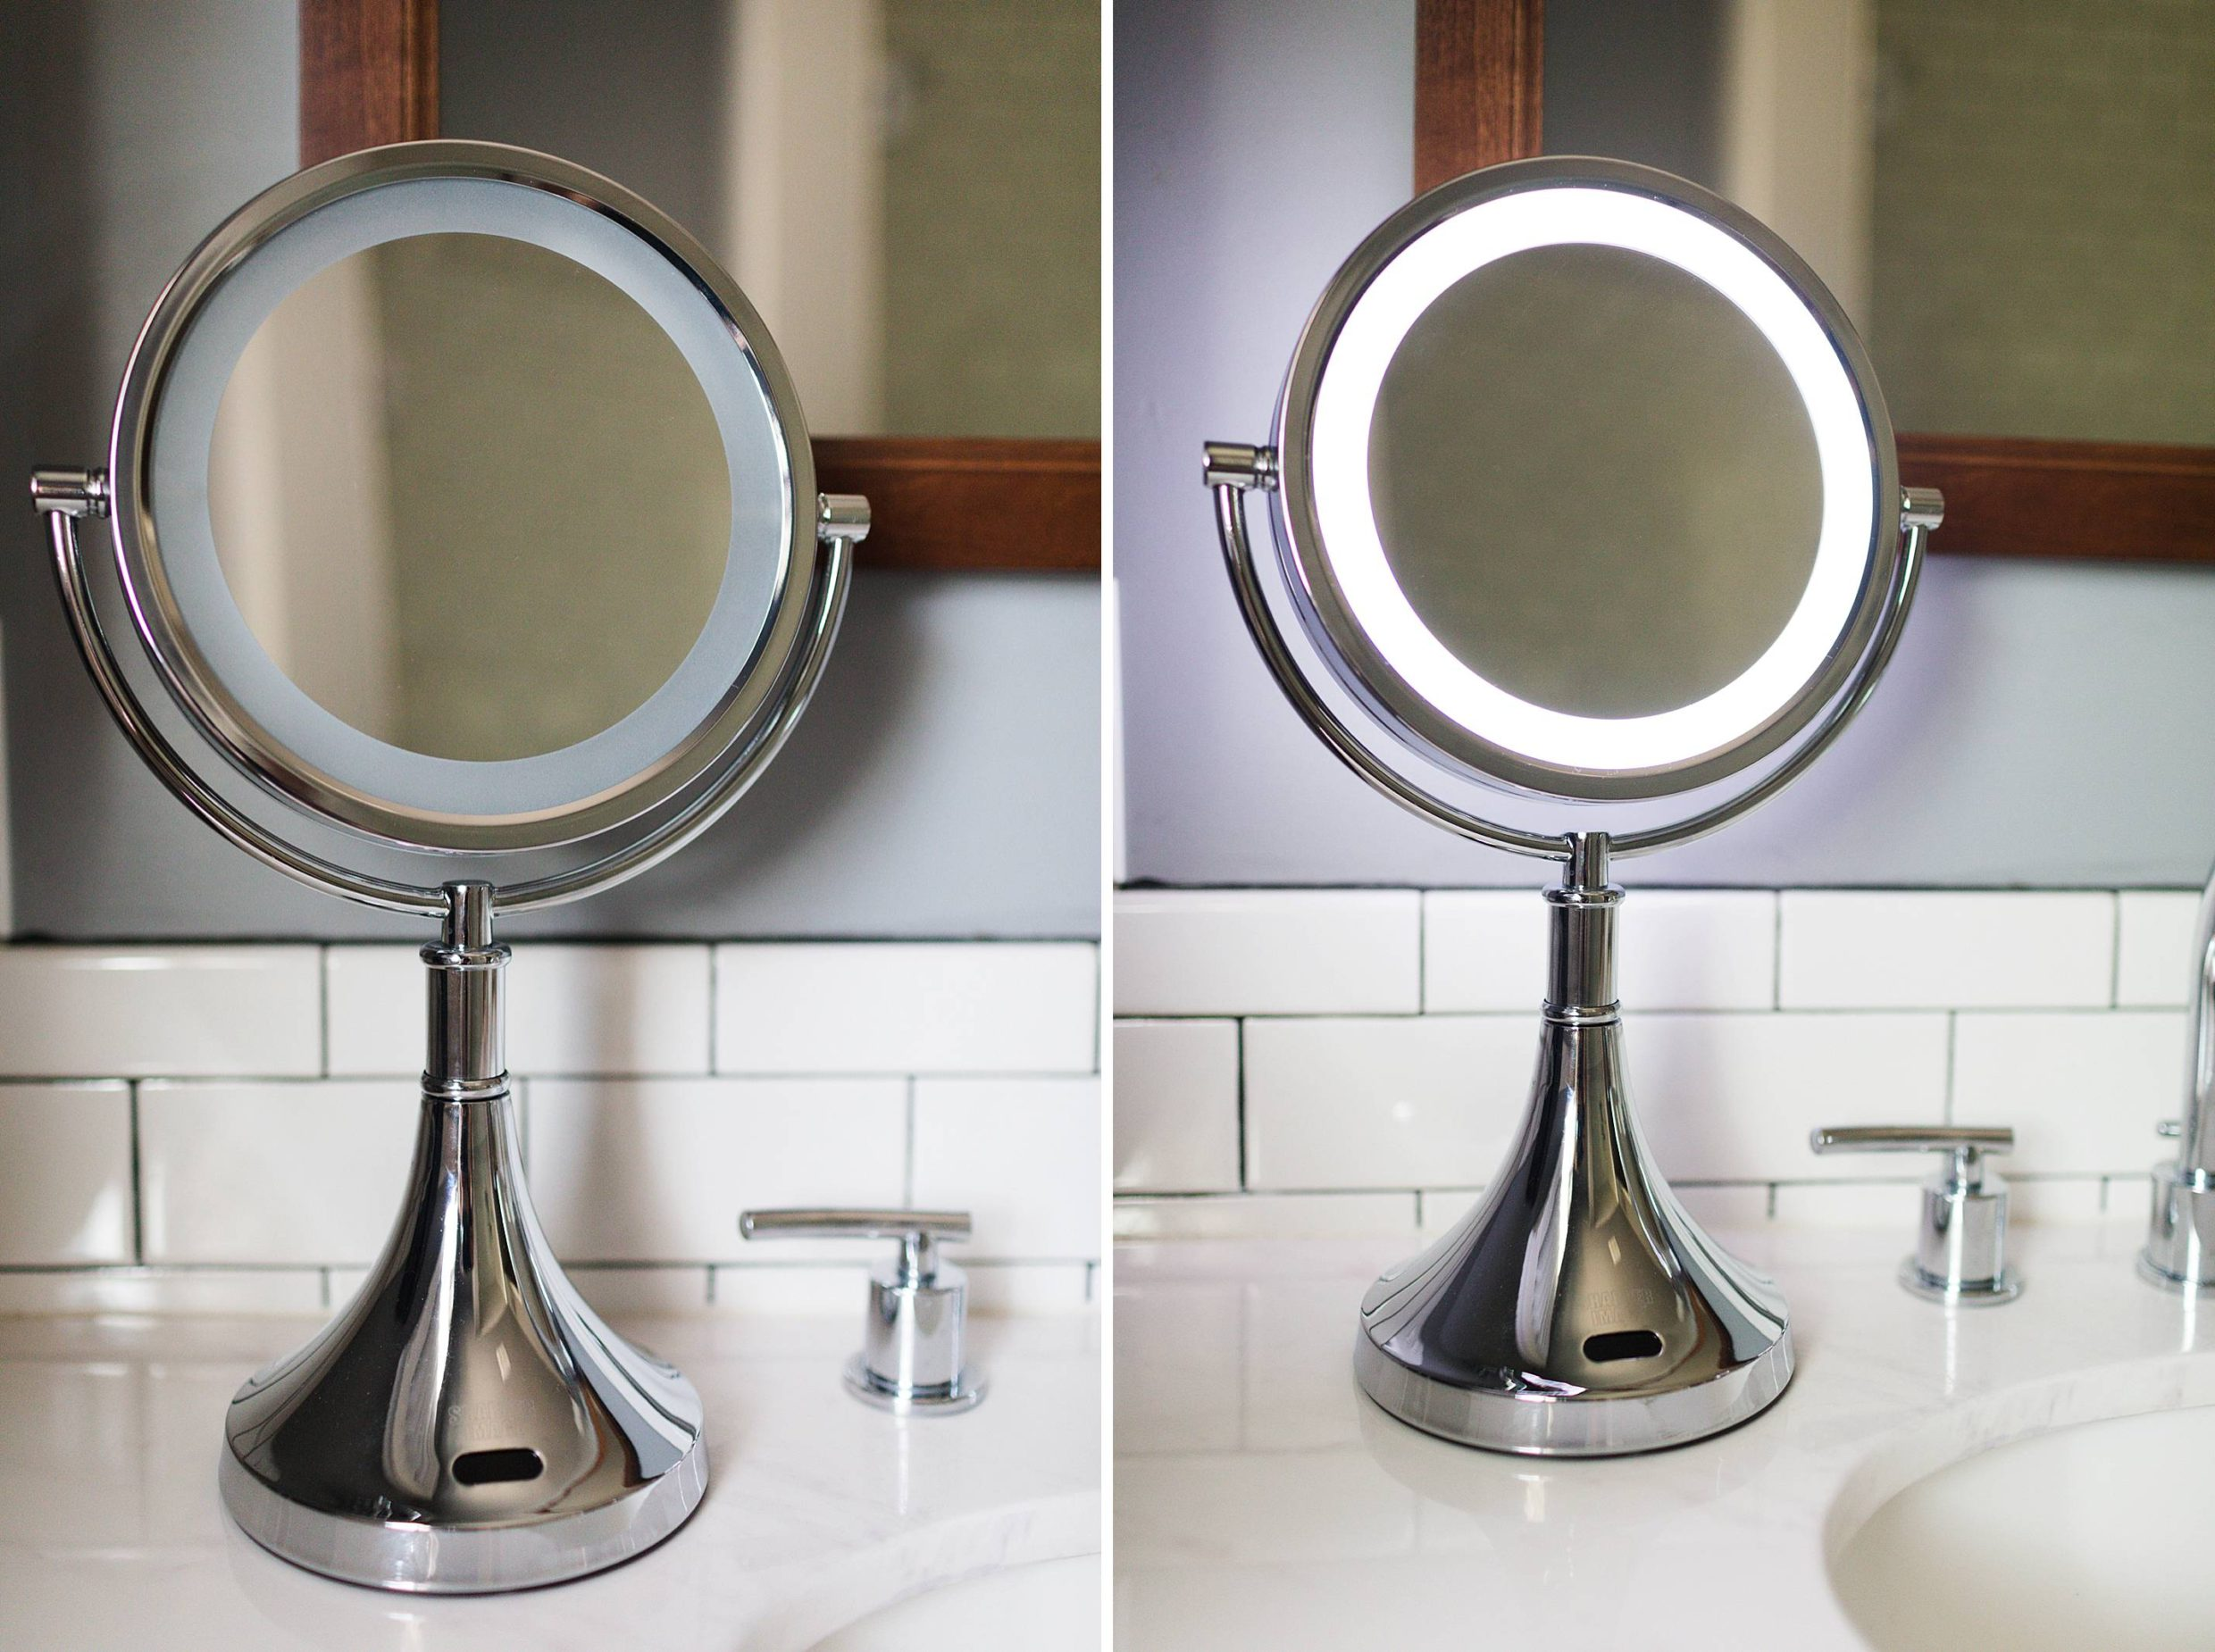 LED motion sensor beauty mirror 8x magnification and cord free